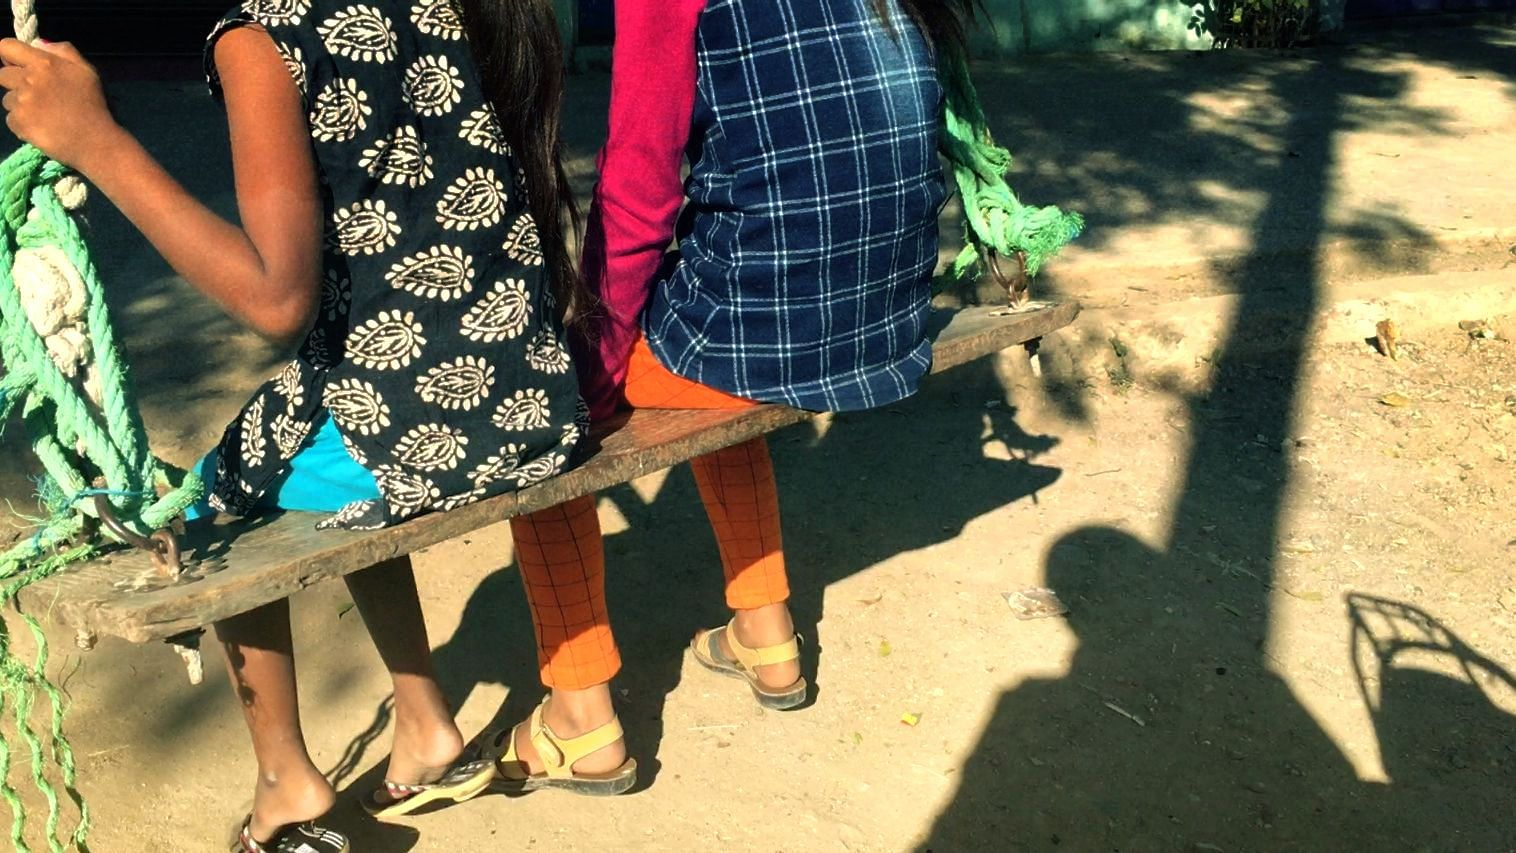 Highway to Hell: MP's Dalit Sex Workers